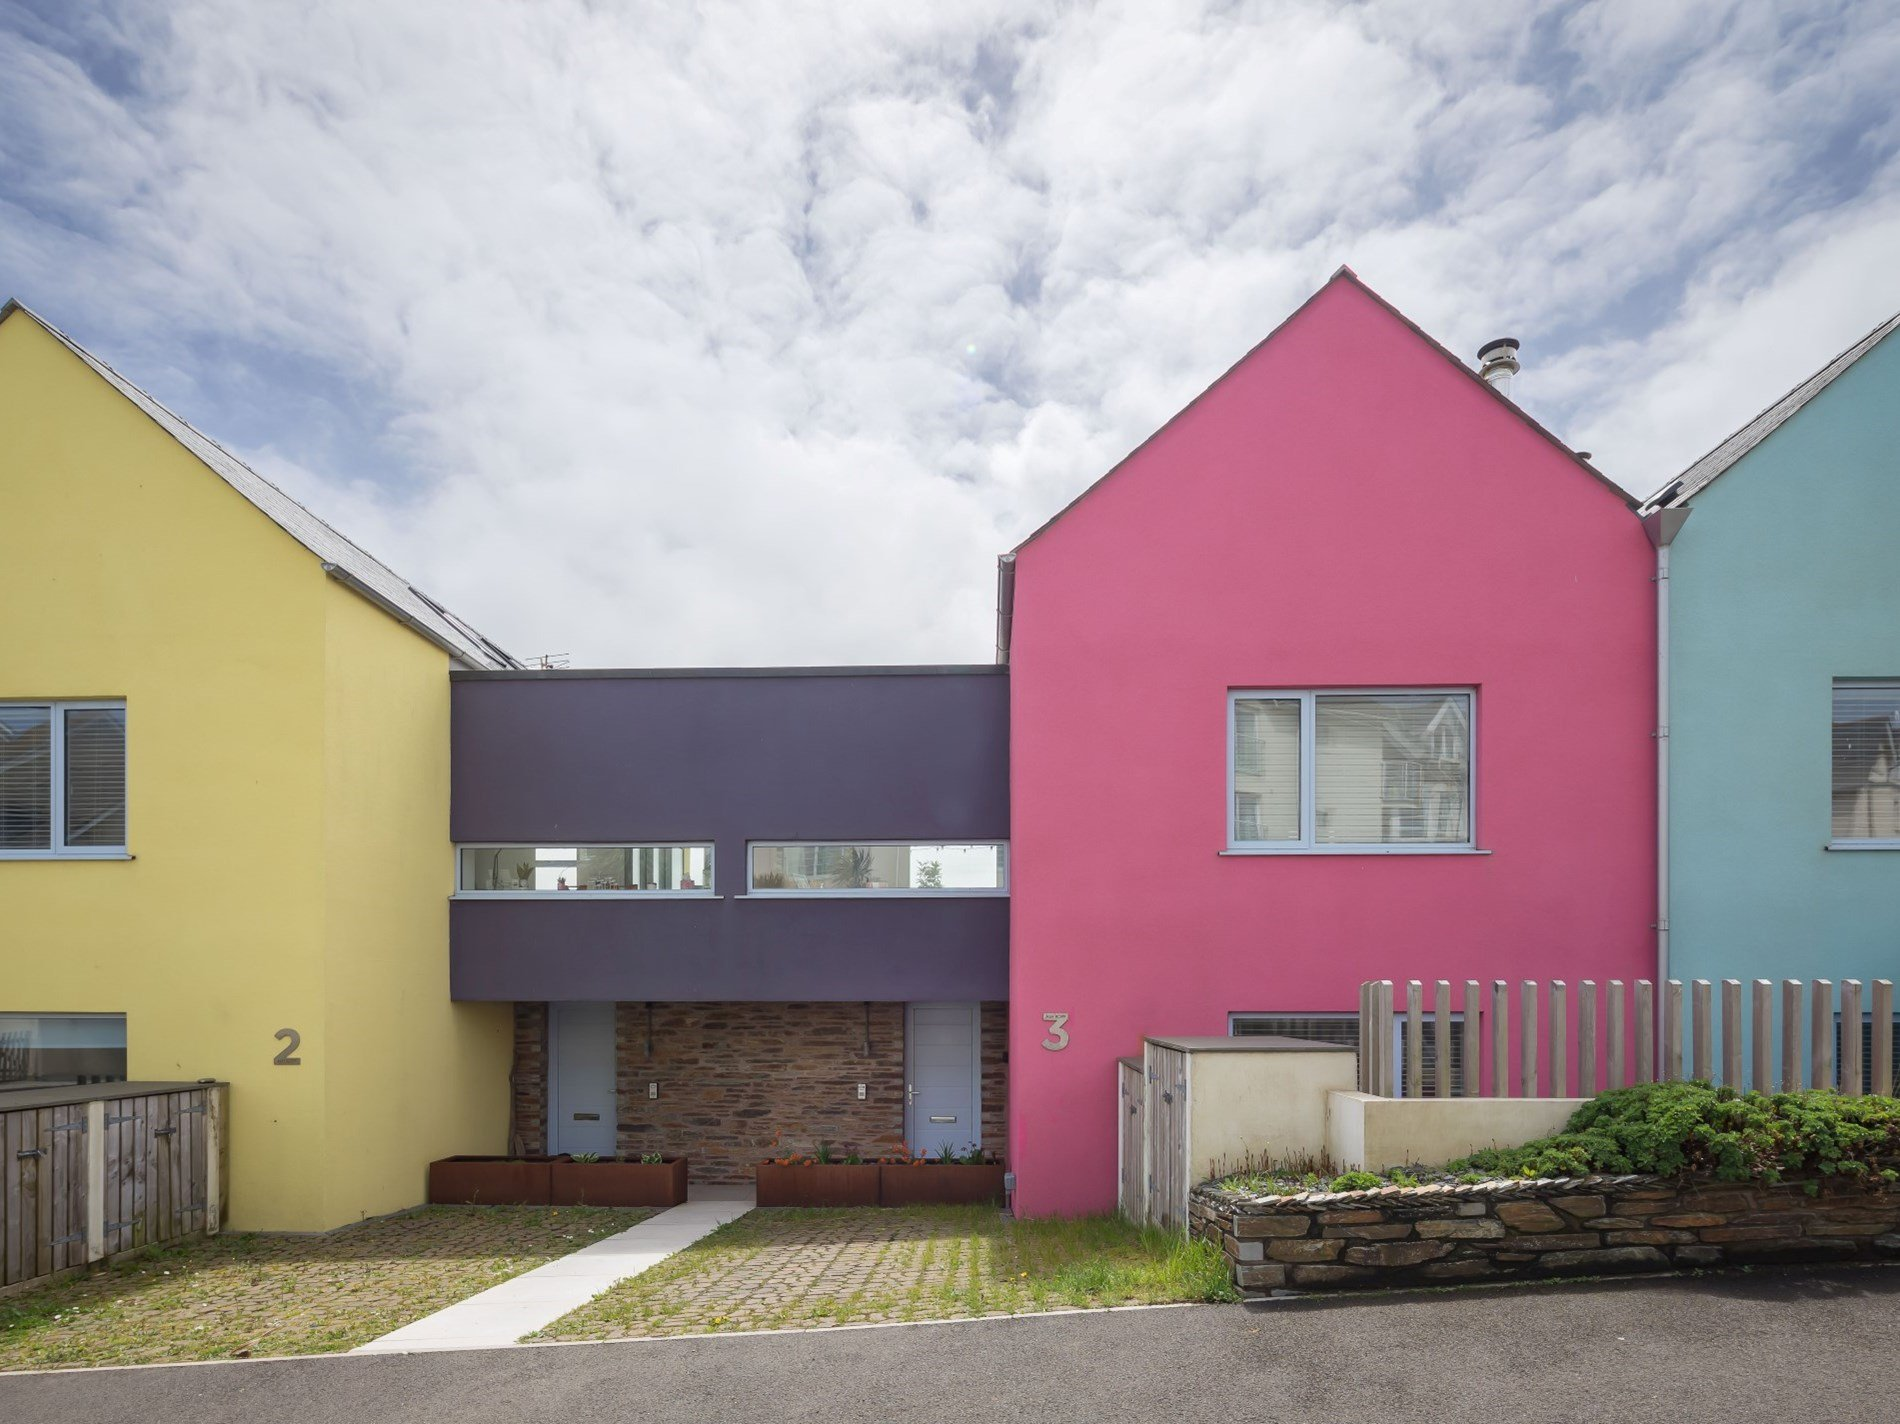 6 Bedroom Cottage in Bude, Cornwall